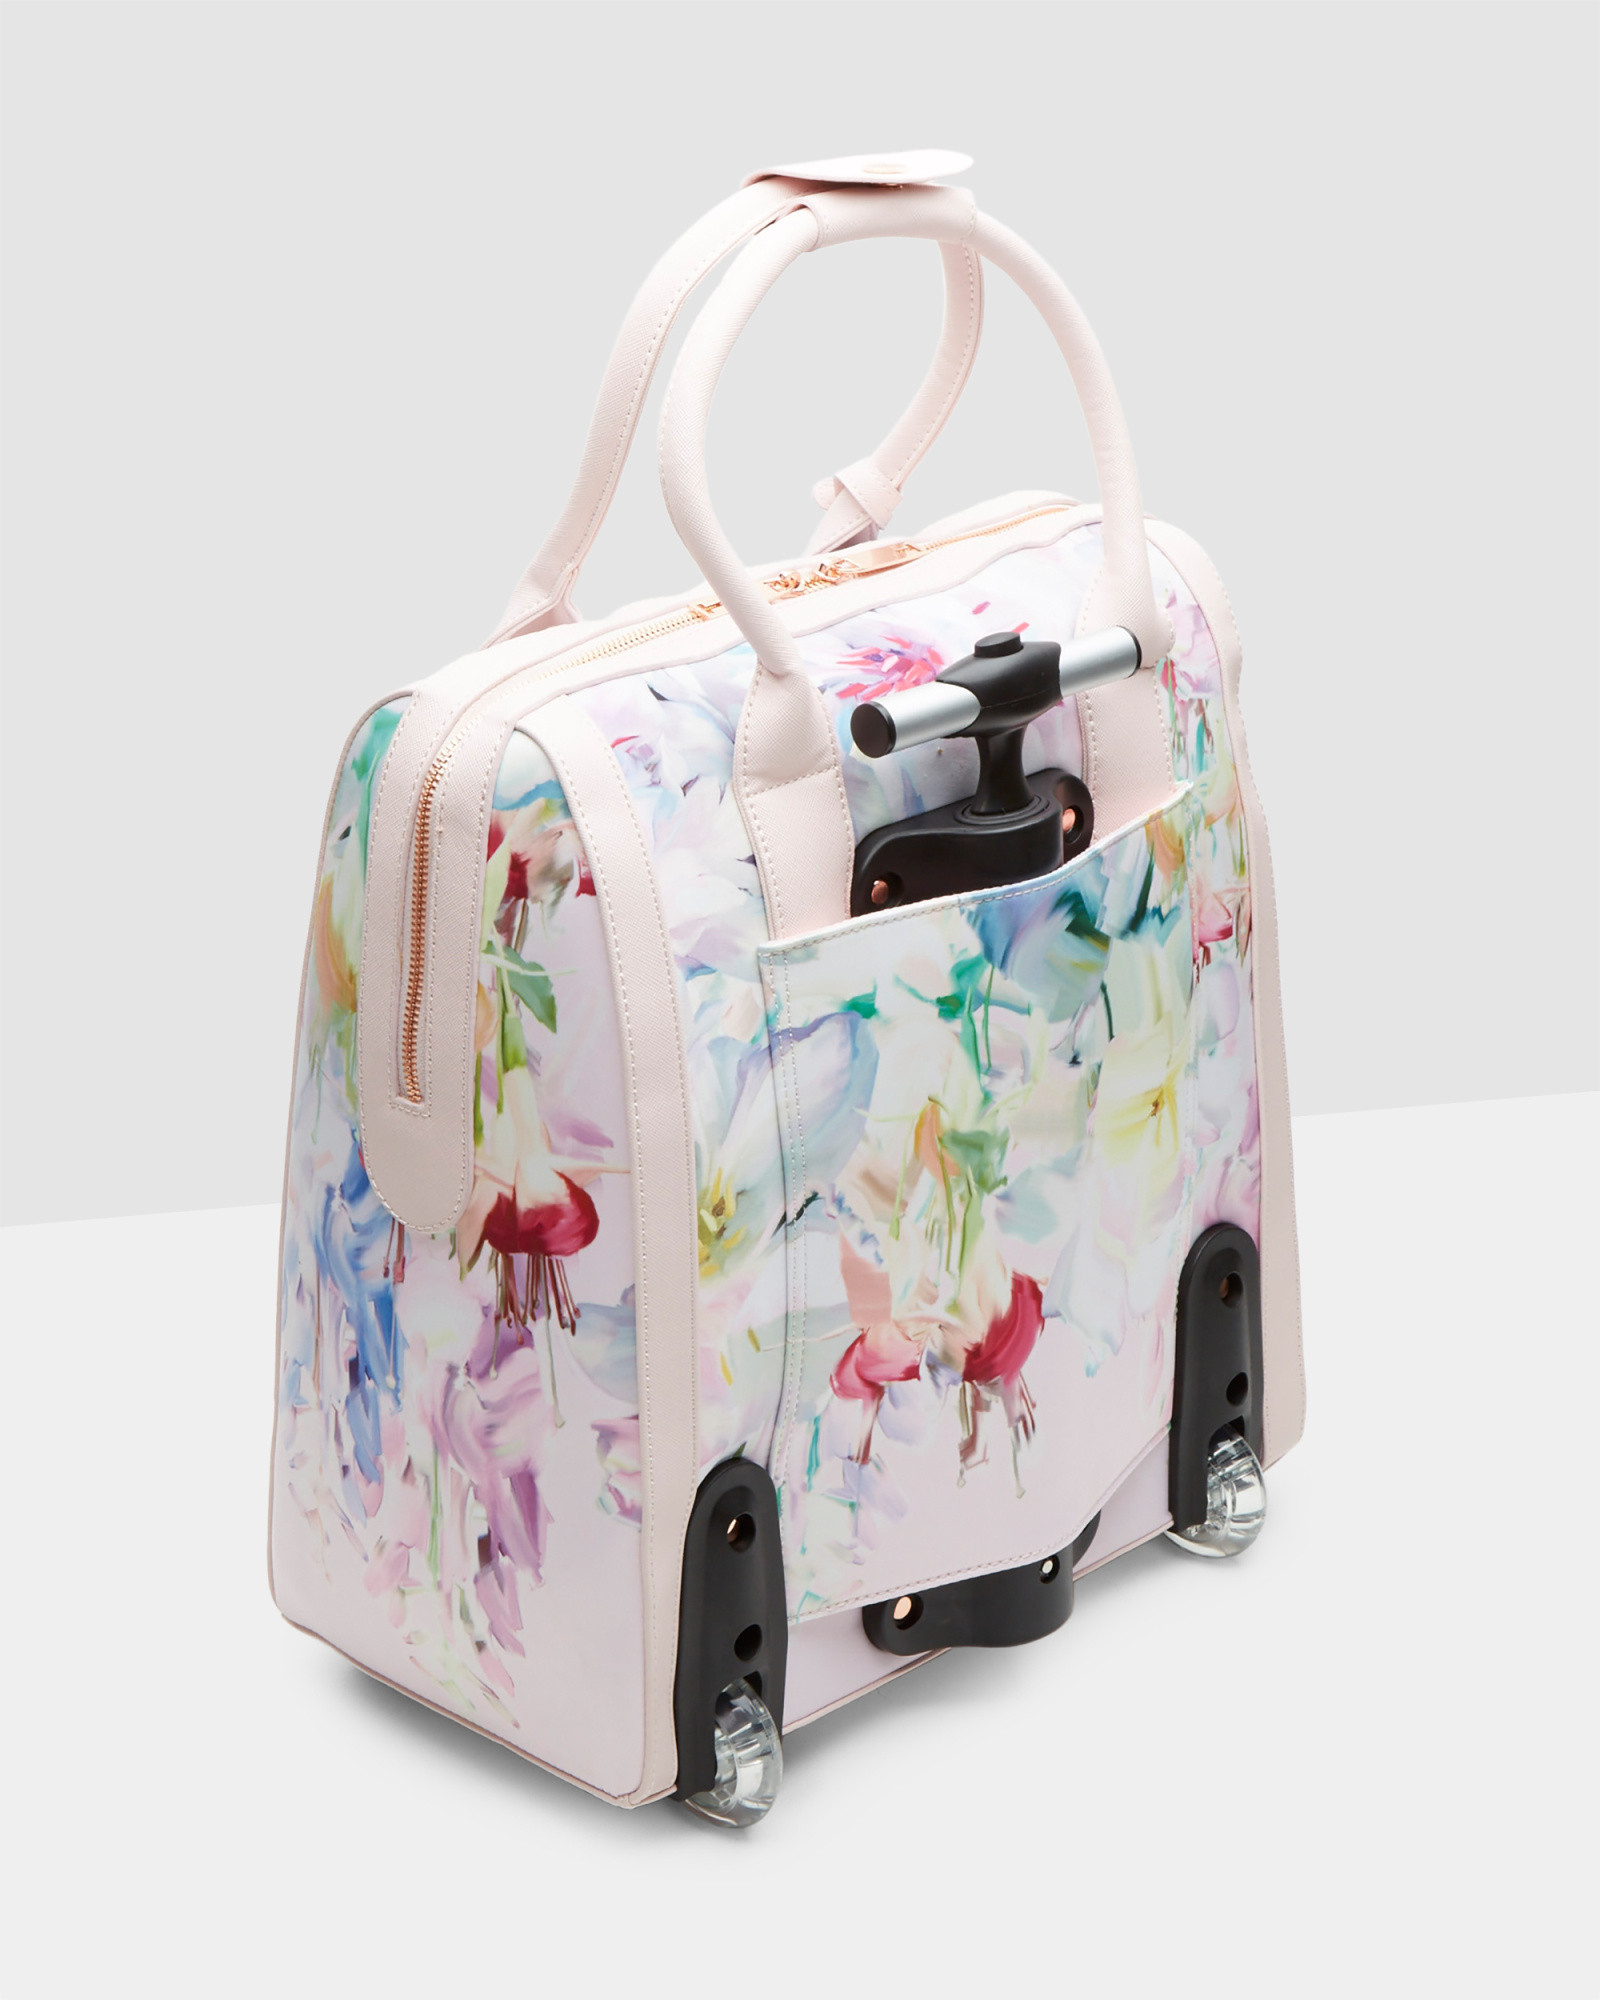 e957a9985 Ted Baker Hanging Gardens Travel Bag in Pink - Lyst